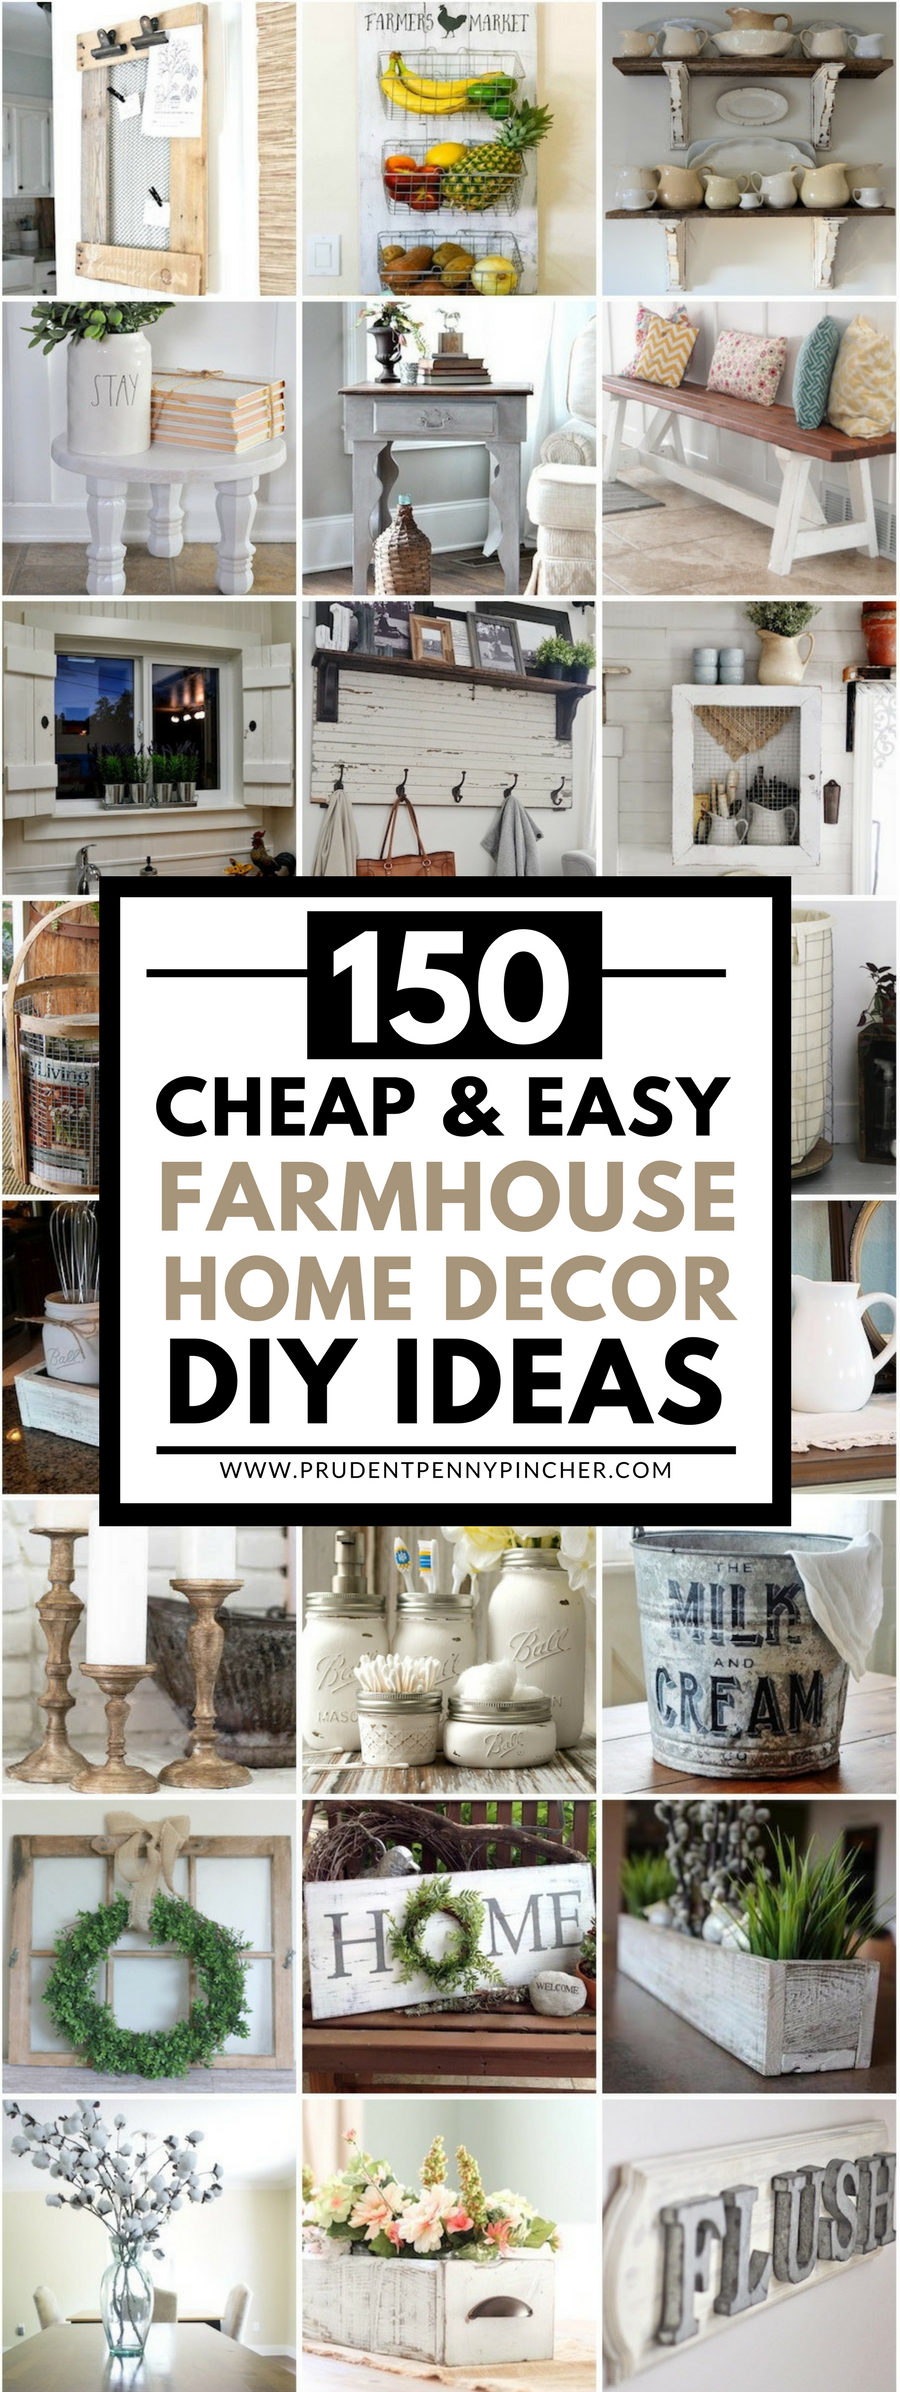 150 cheap and easy diy farmhouse style home decor ideas prudent penny pincher Home design ideas for cheap